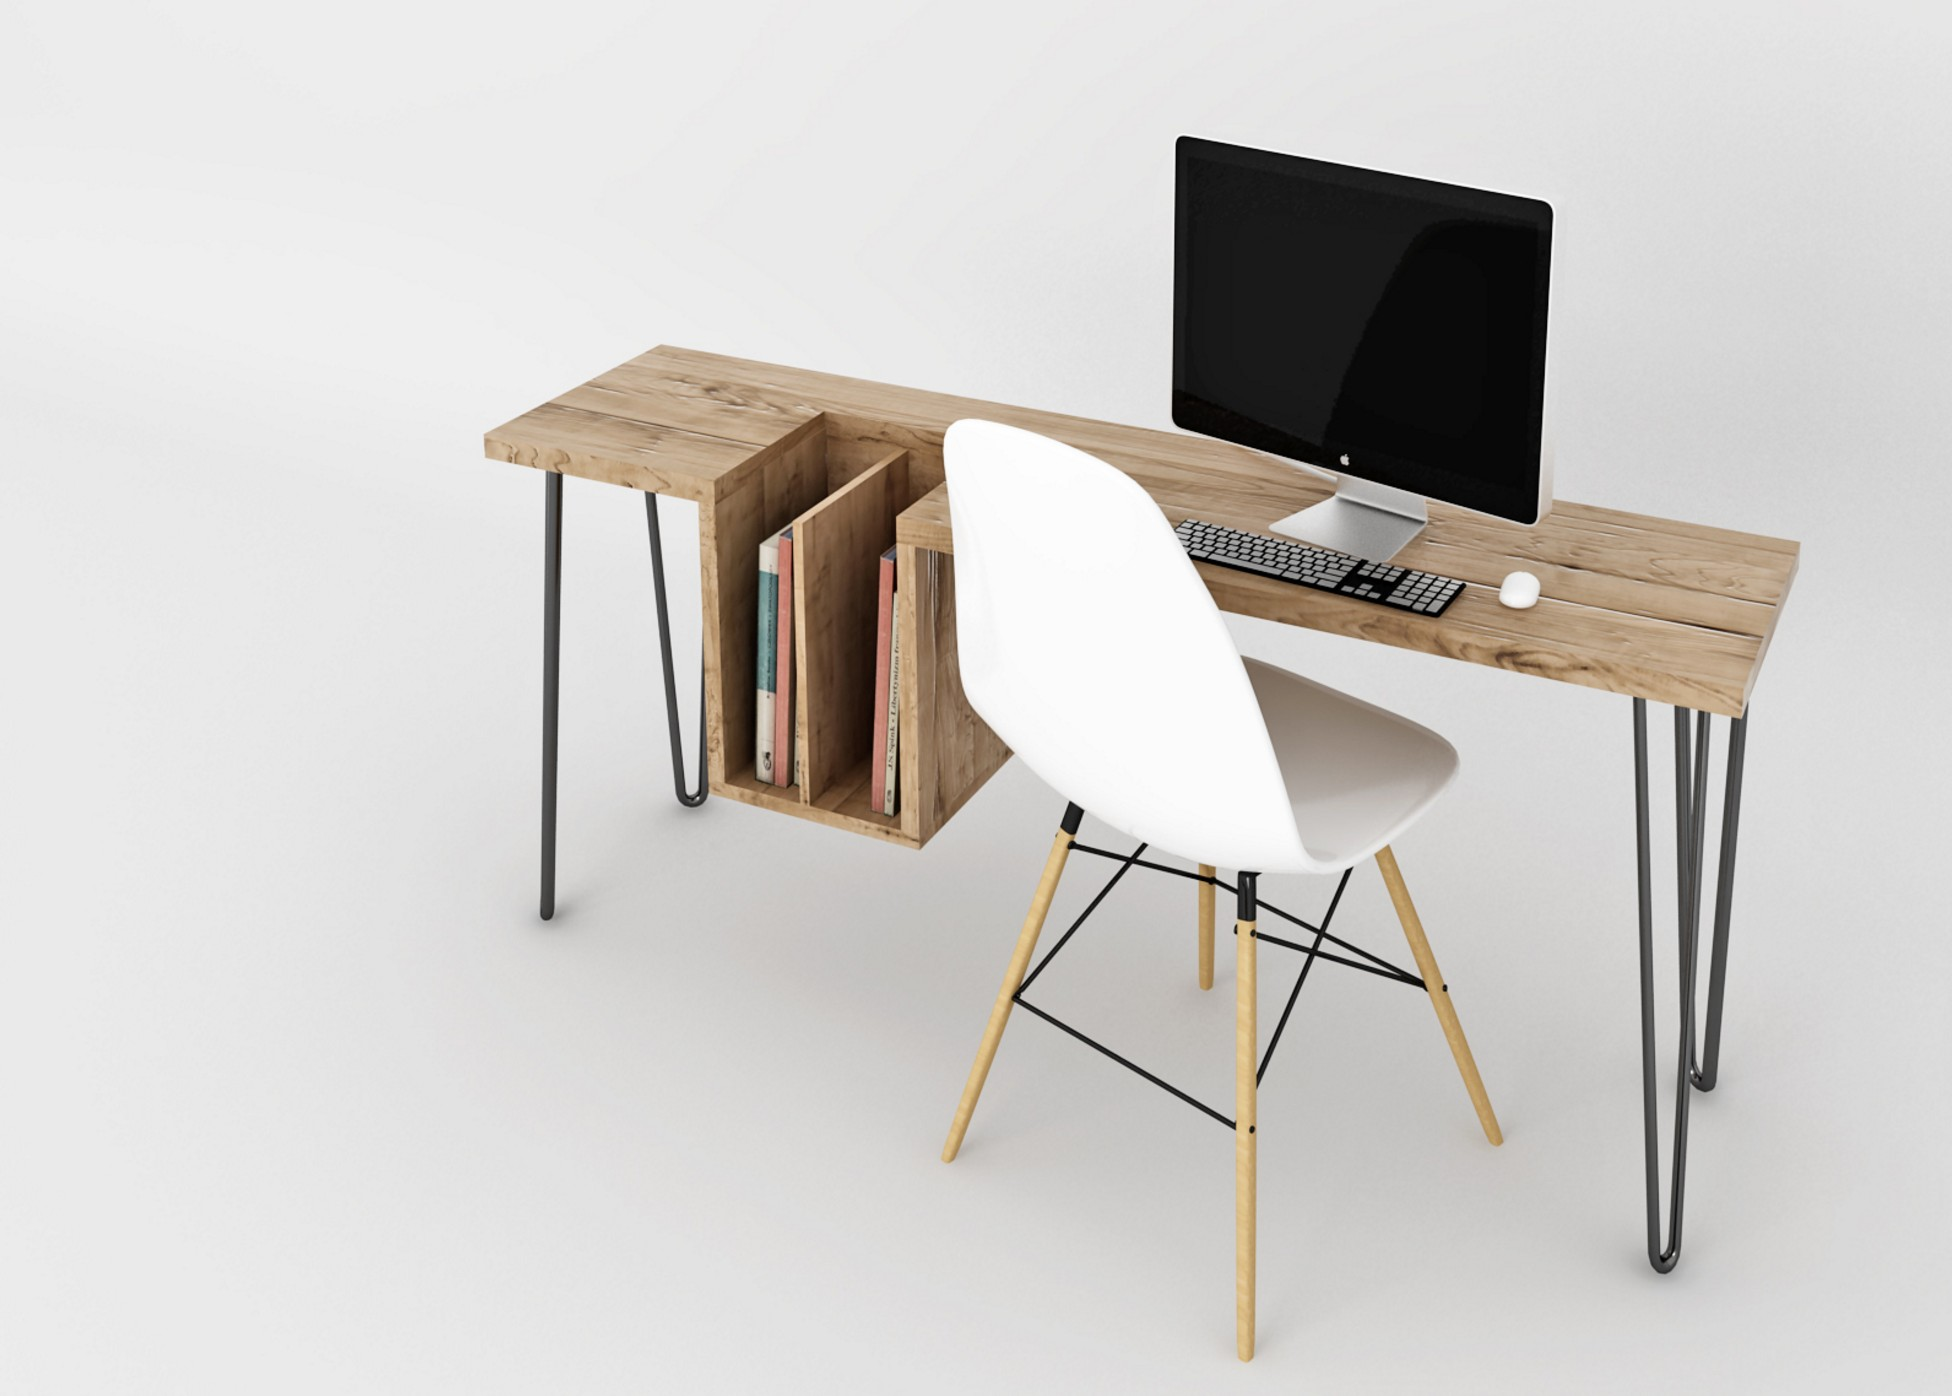 Bureau design bois 5 blog d co design for Bureau en bois design